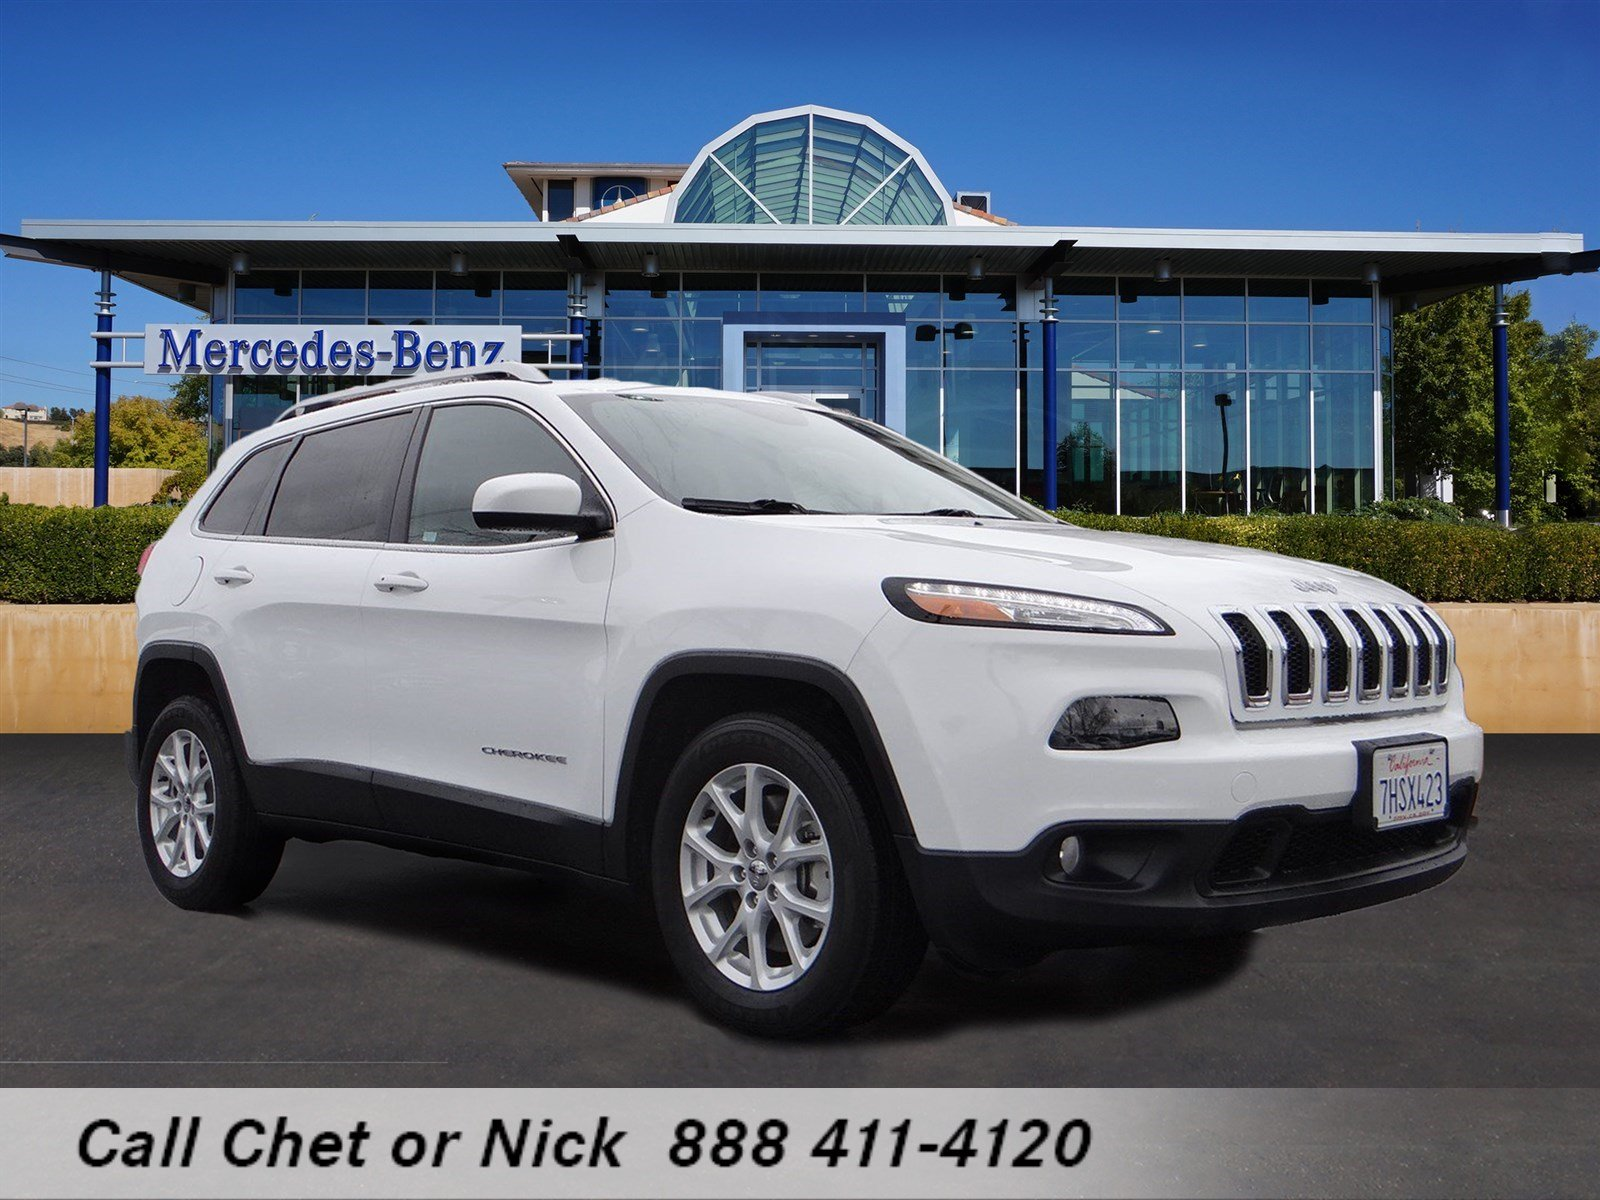 pre owned 2015 jeep cherokee latitude sport utility in el dorado hills r18563 mercedes benz. Black Bedroom Furniture Sets. Home Design Ideas